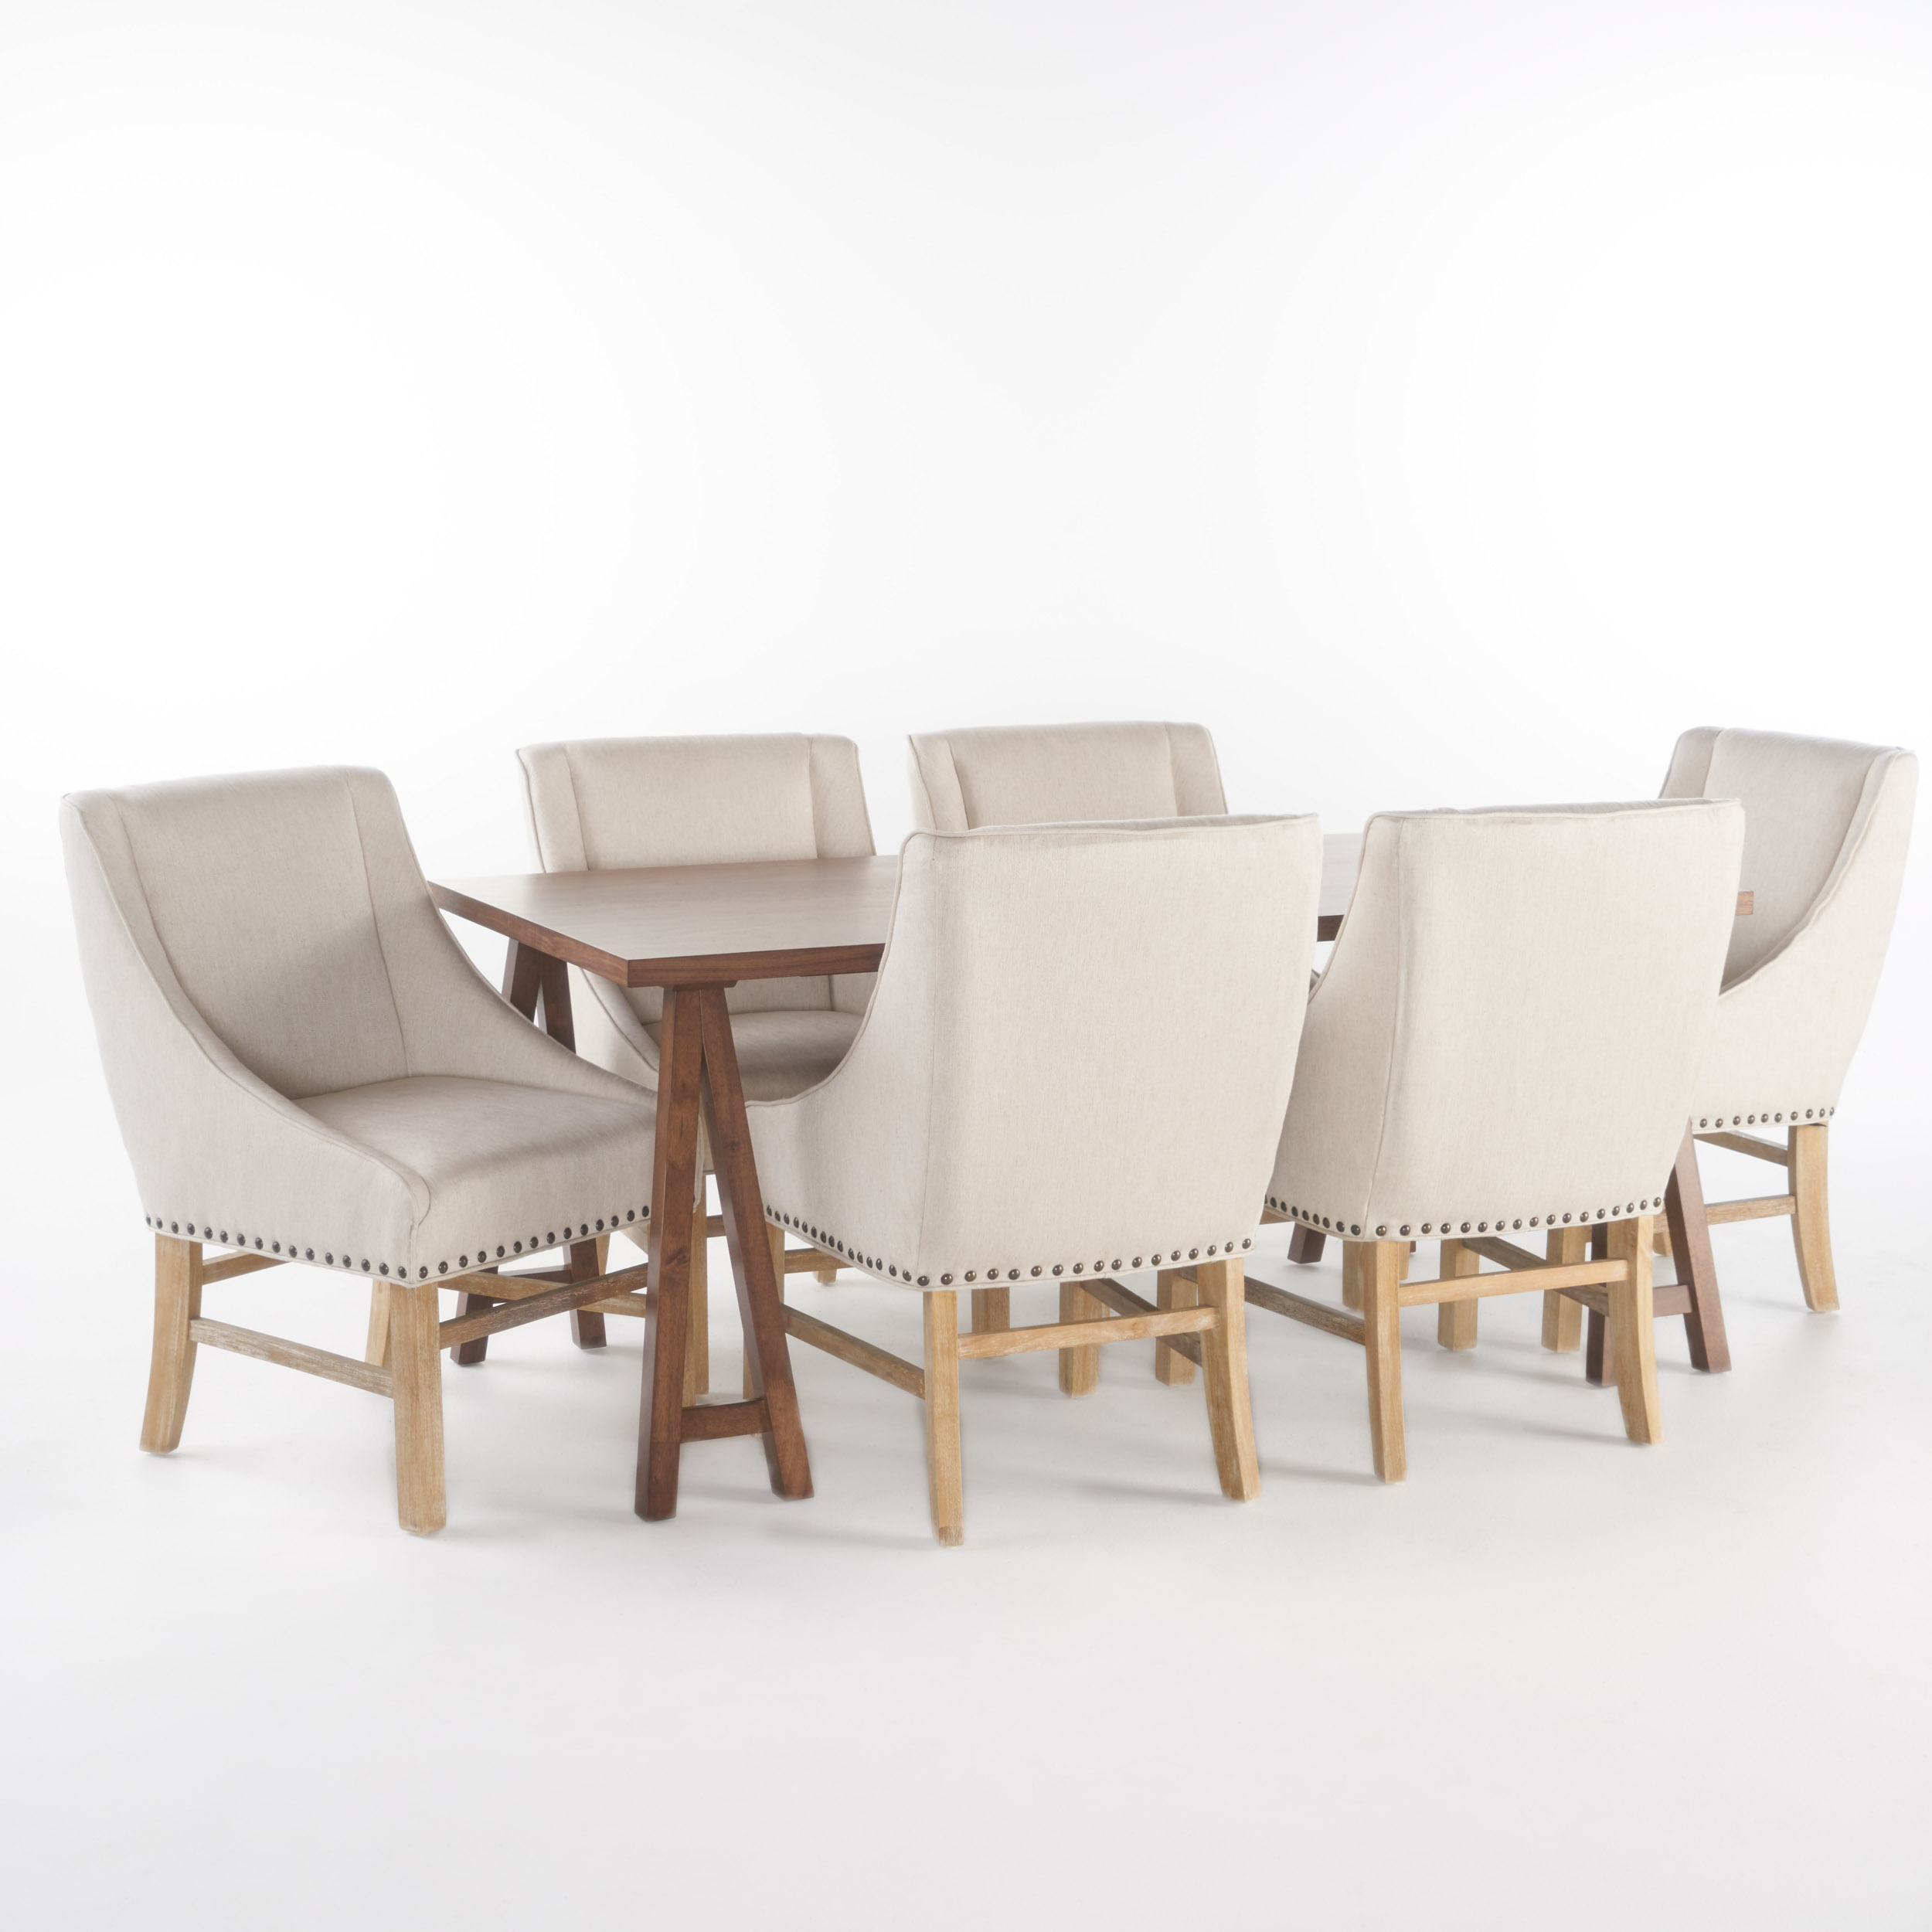 Sabrina Farmhouse 7 Piece Dining Set with Linen Fabric Dining Chairs, Natural Walnut